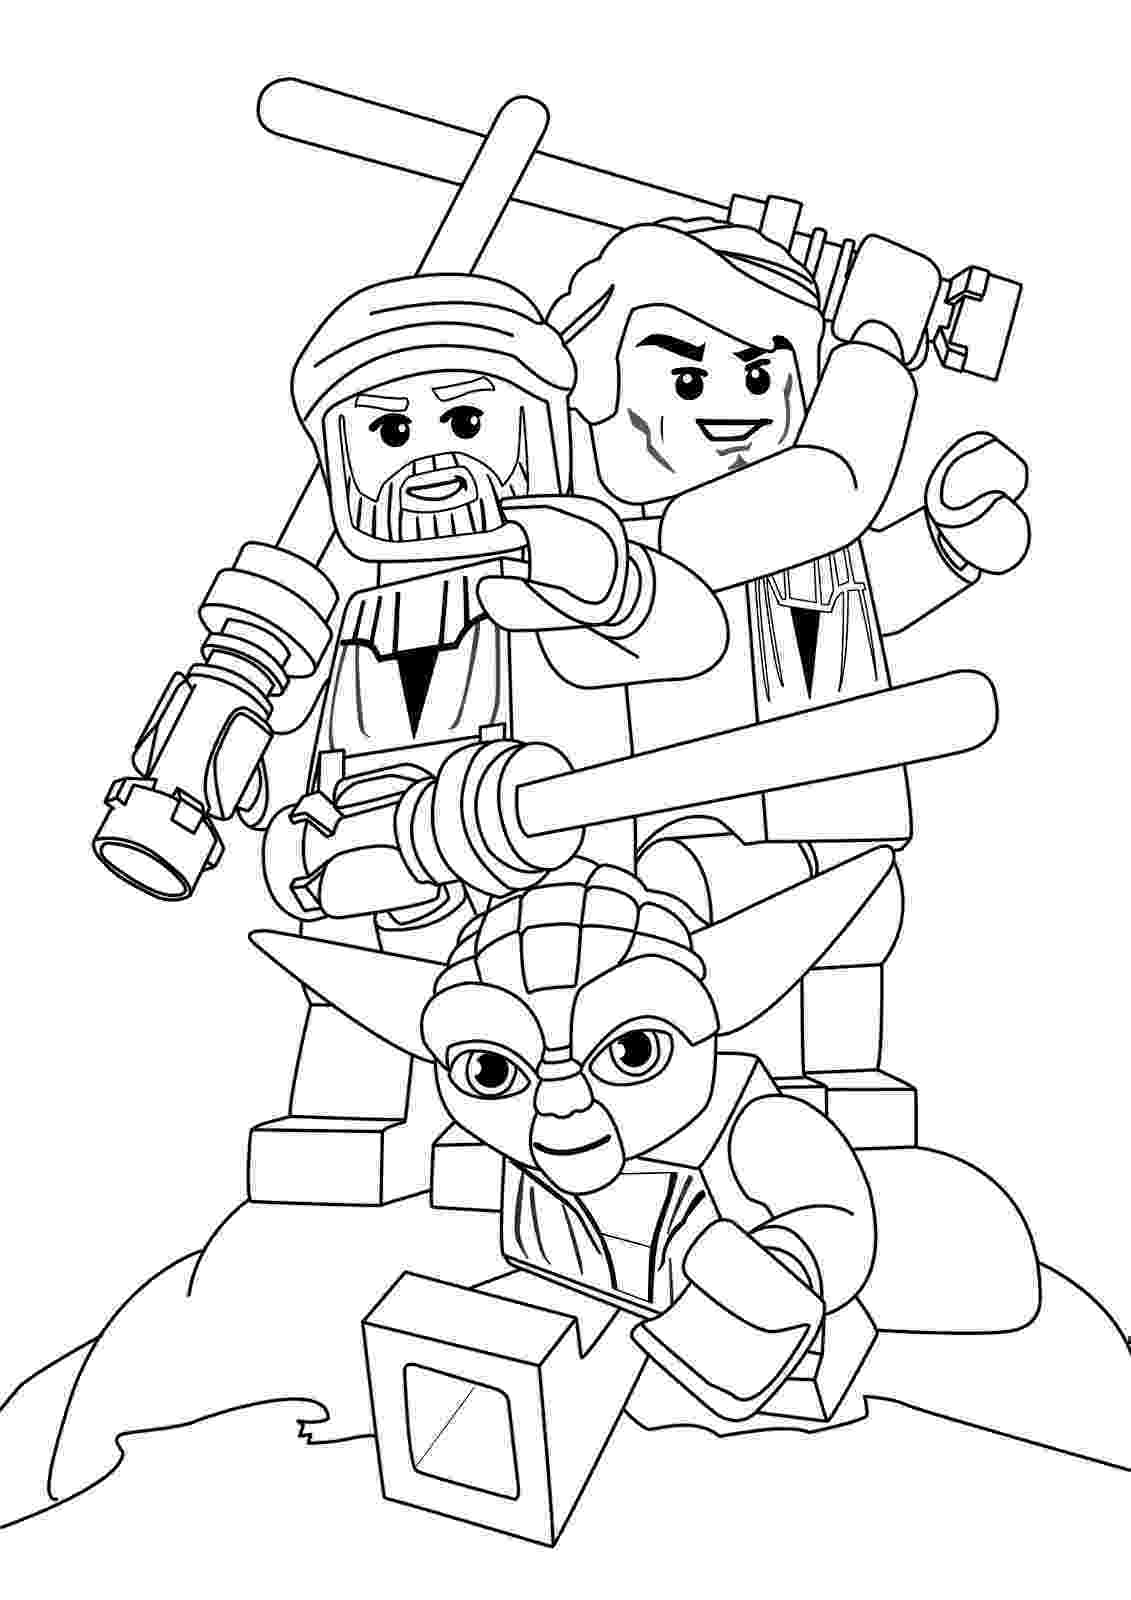 lego pictures to colour free printable lego coloring pages paper trail design pictures lego colour to